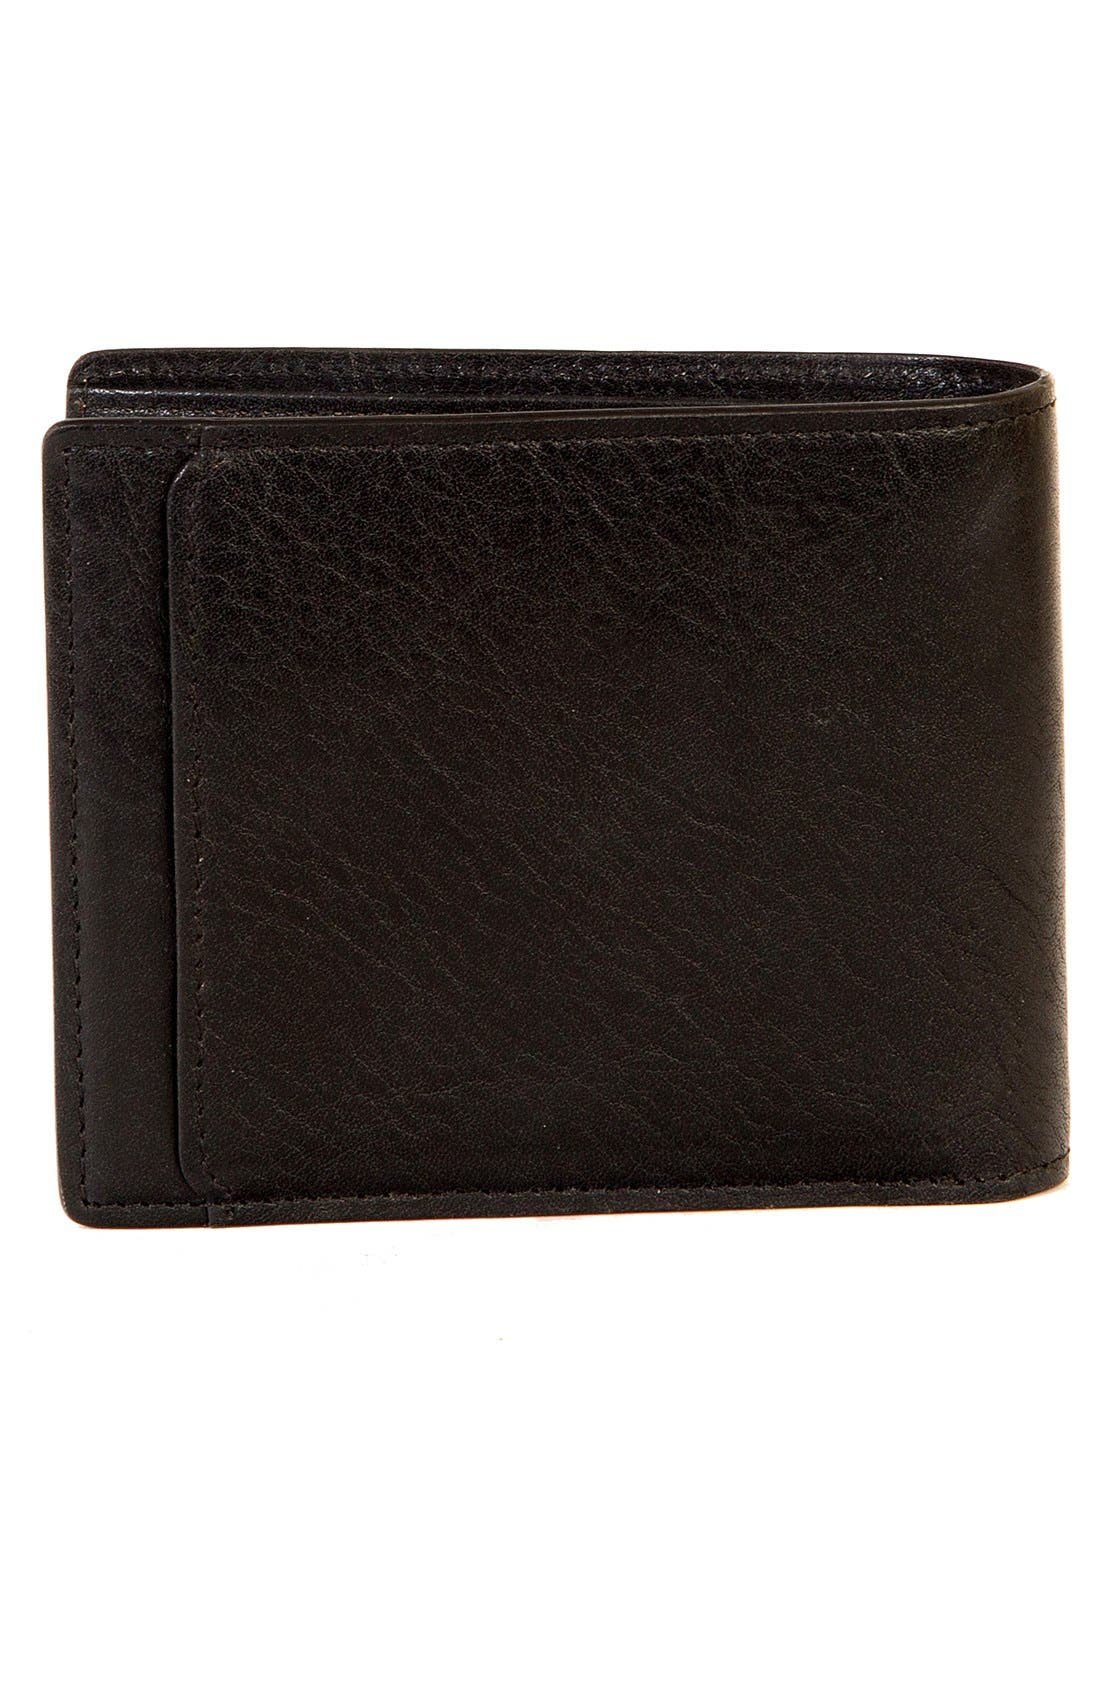 'Becker' RFID Leather Wallet,                             Alternate thumbnail 2, color,                             001